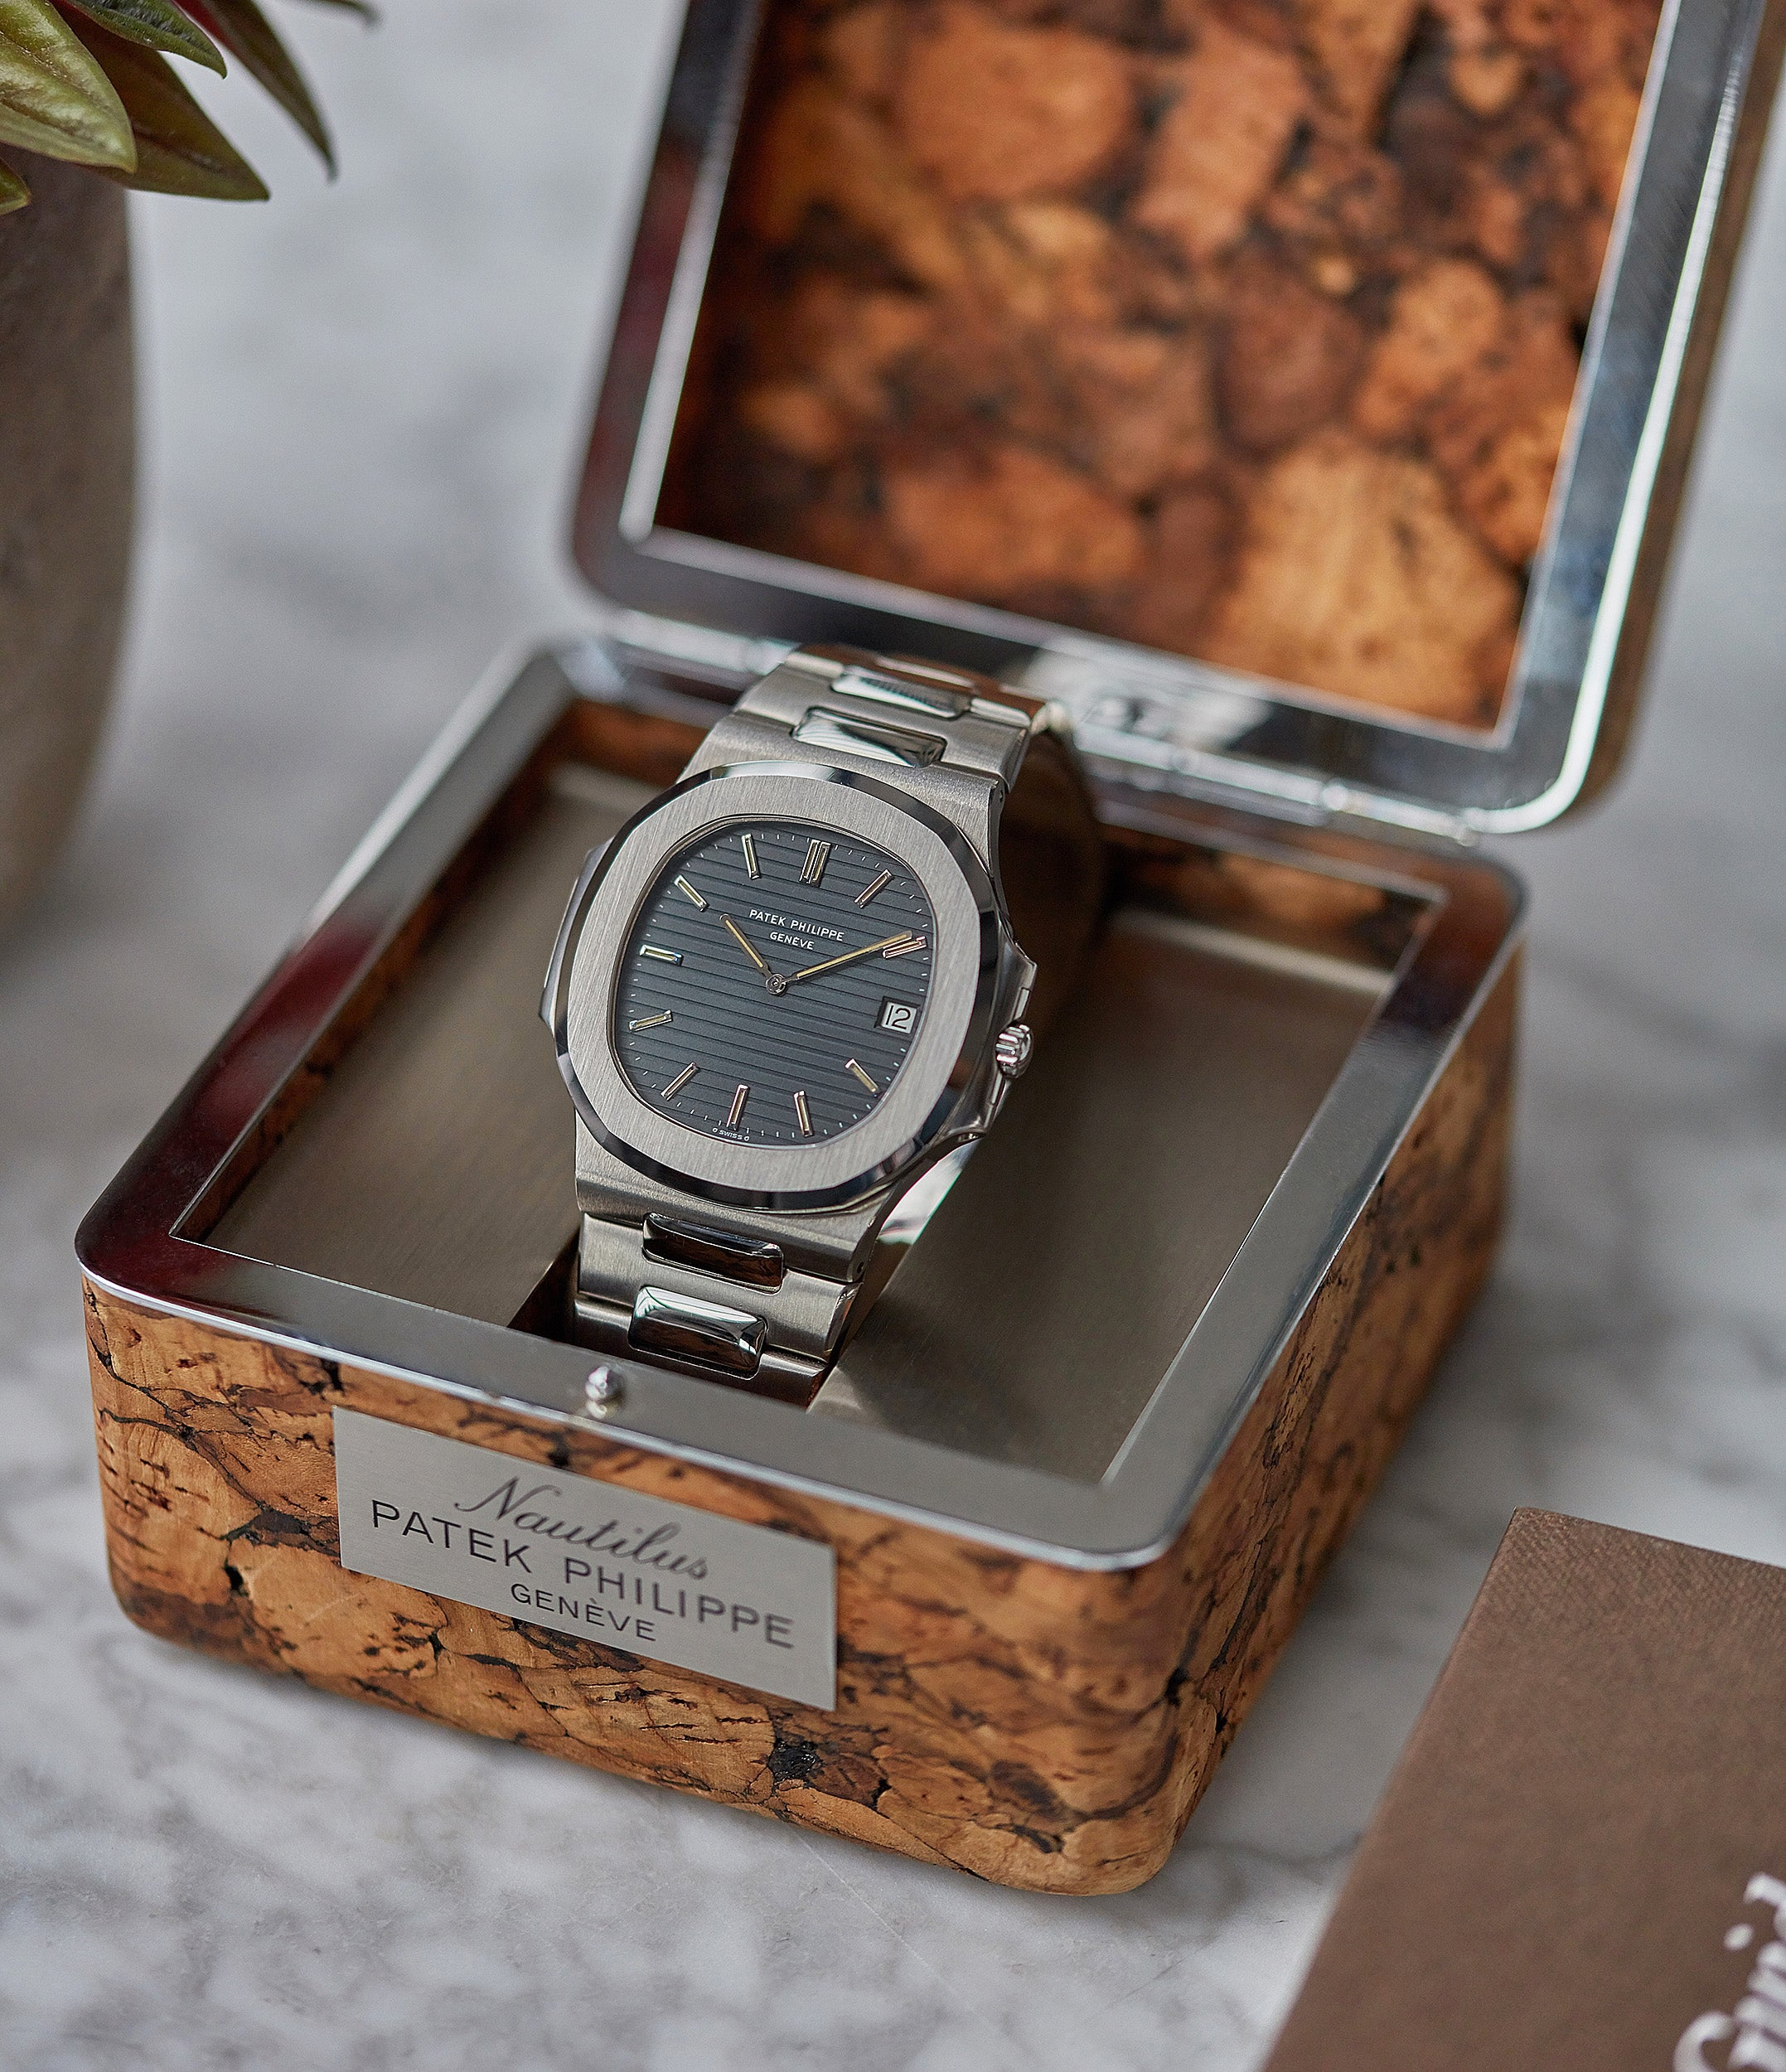 Patek Philippe cork box Nautilus 3700/001 full set sport watch for sale online at A Collected Man London UK specialist of rare watches